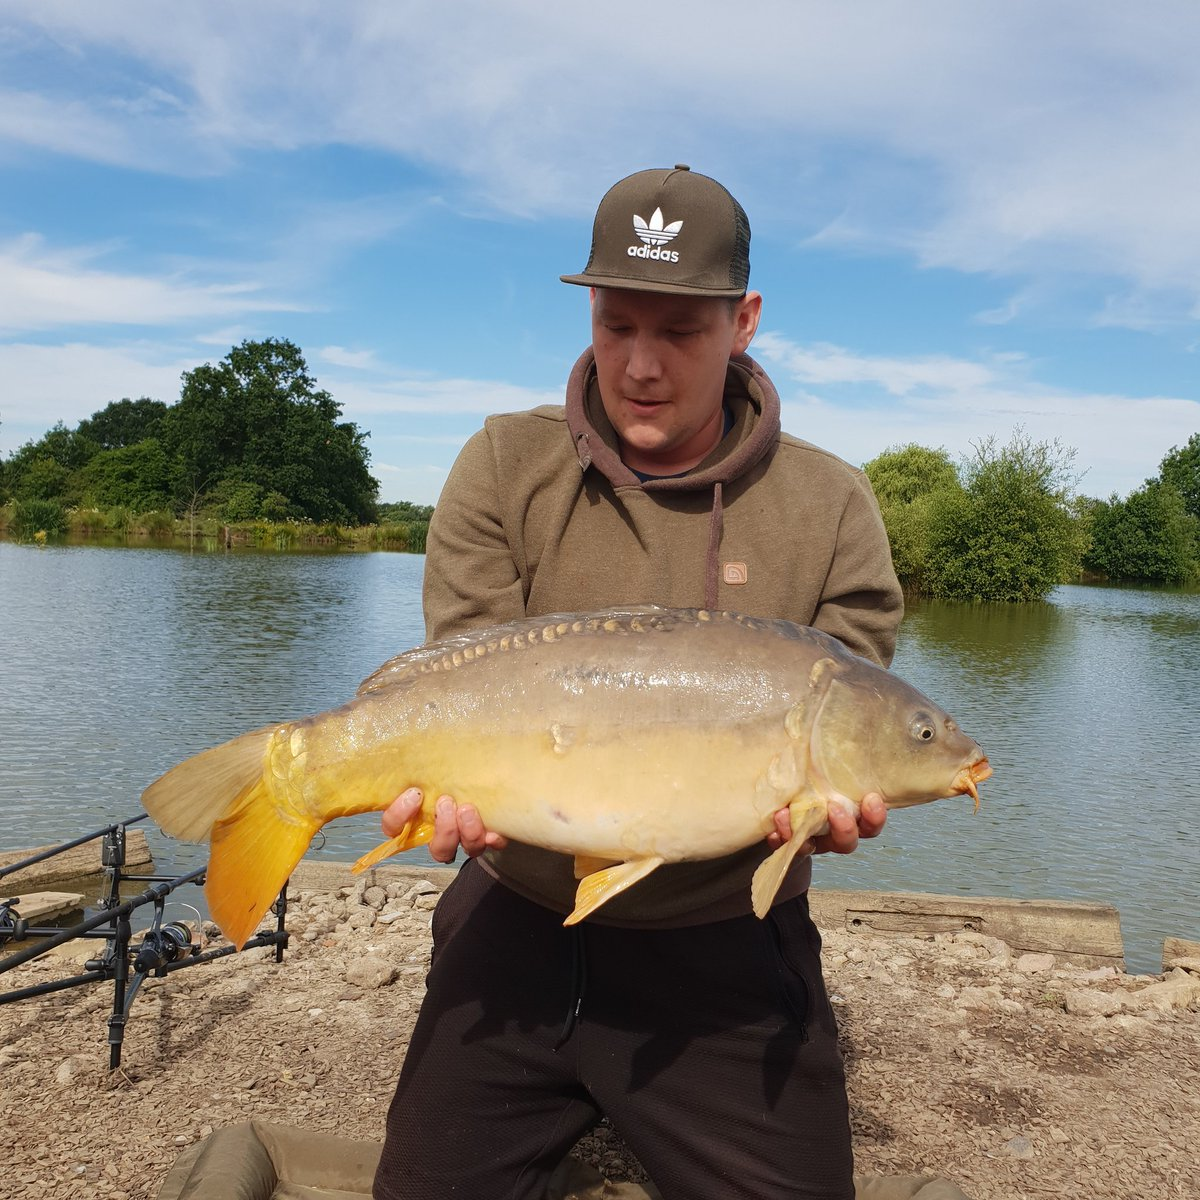 Another one falls to the new <b>Mainline</b> bait the link  #<b>Mainline</b> #carp #carpfishing http